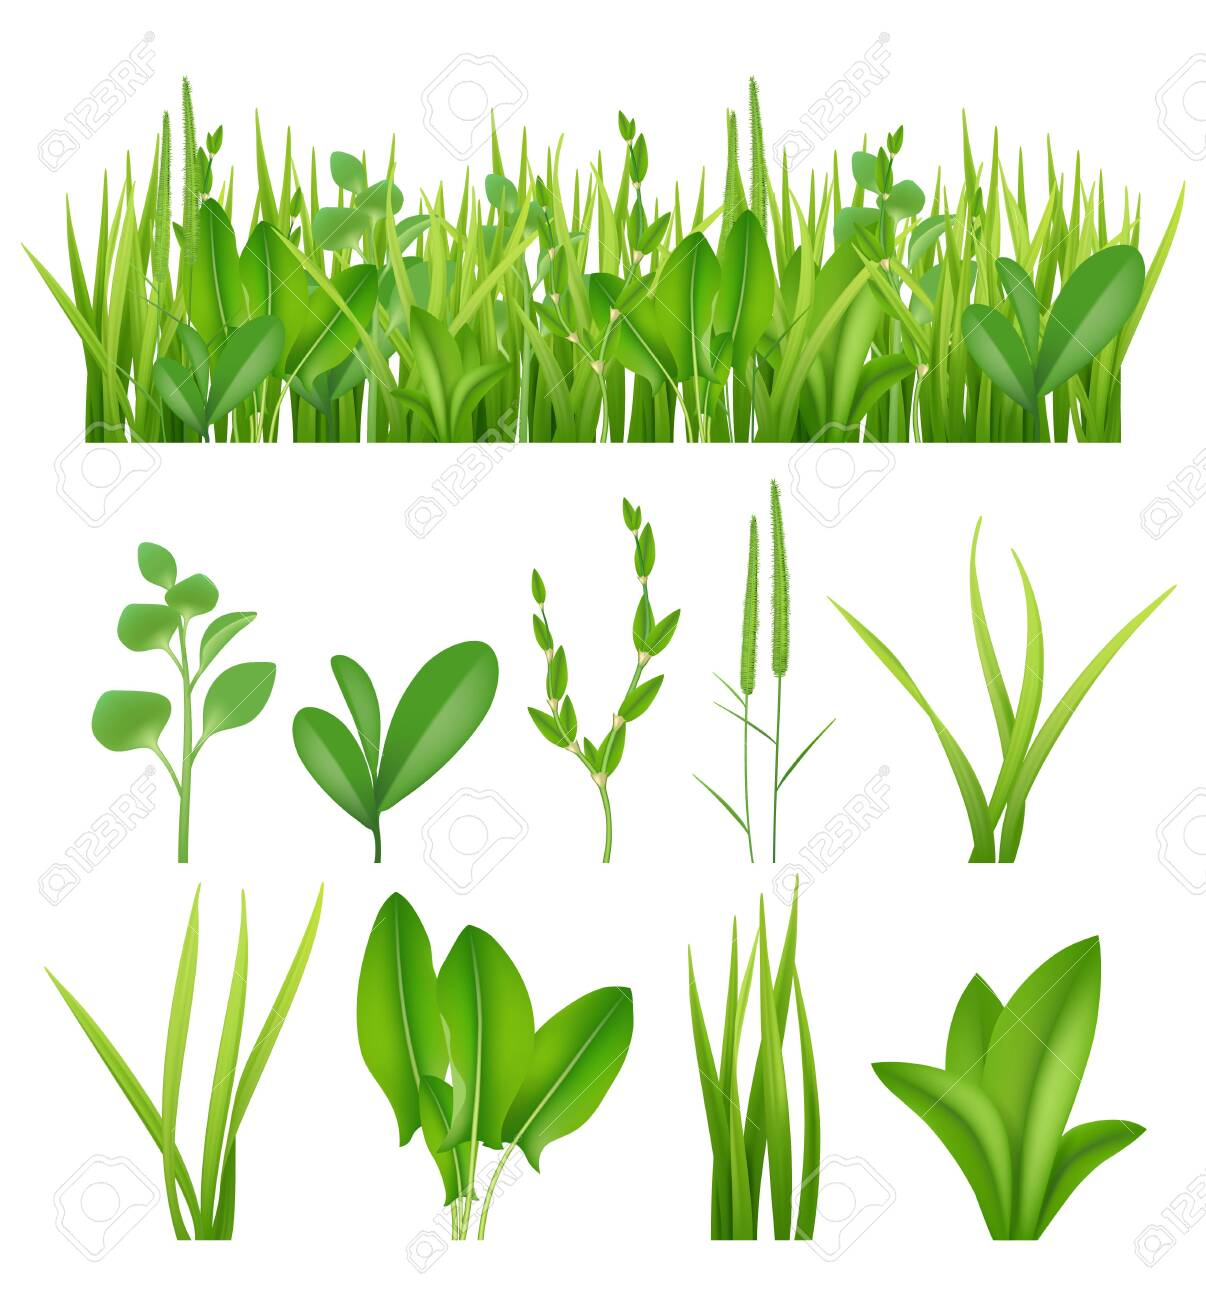 Grass realistic. Ecology set green herbs leaves plants lifes meadows vector elements collection. Grass green meadow, lawn summer lush illustration - 133630774